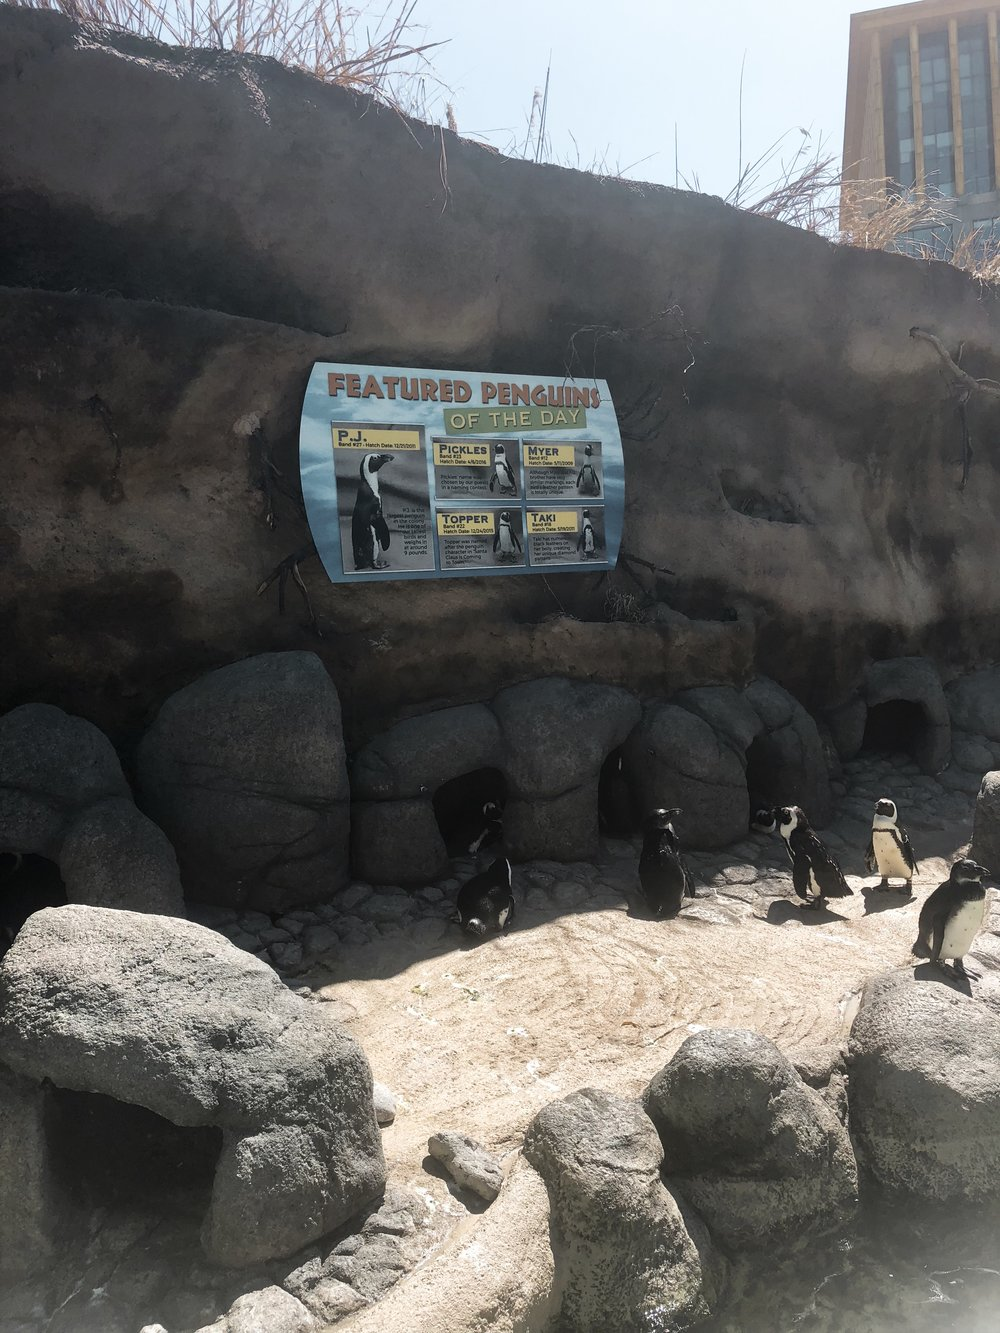 The Penguin Area is outdoors.